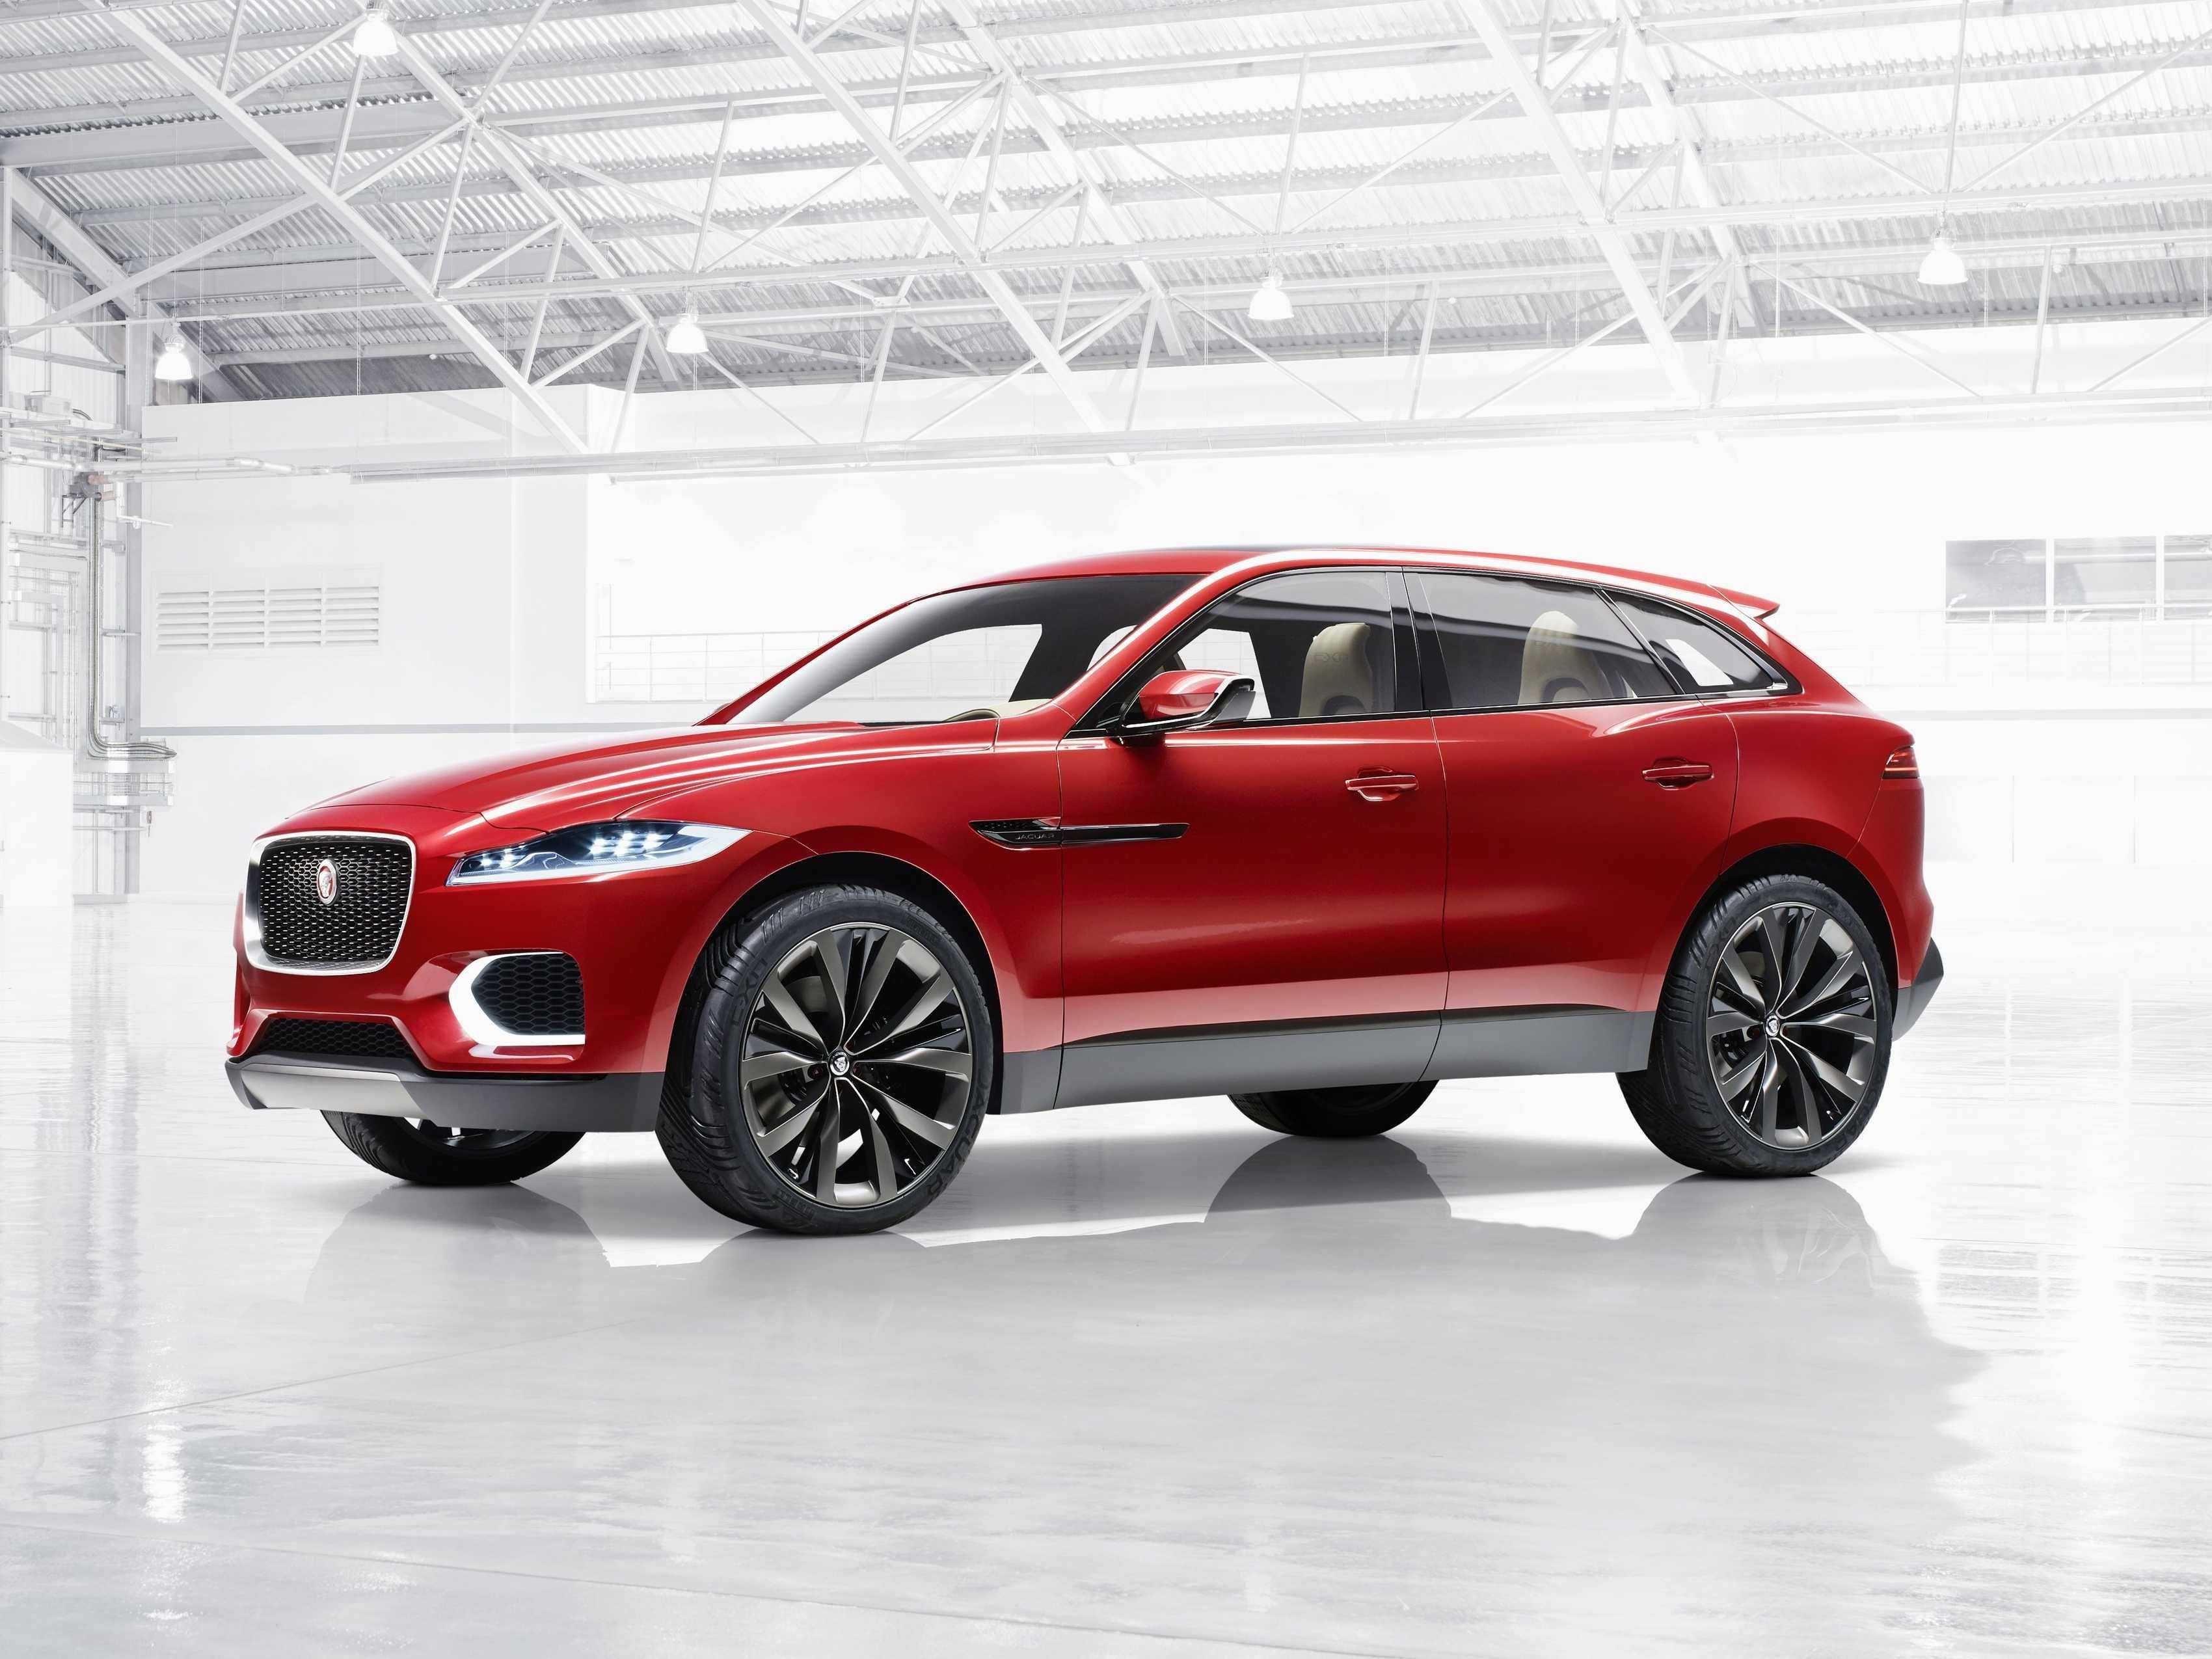 58 New 2020 Jaguar XQs Redesign and Concept with 2020 Jaguar XQs